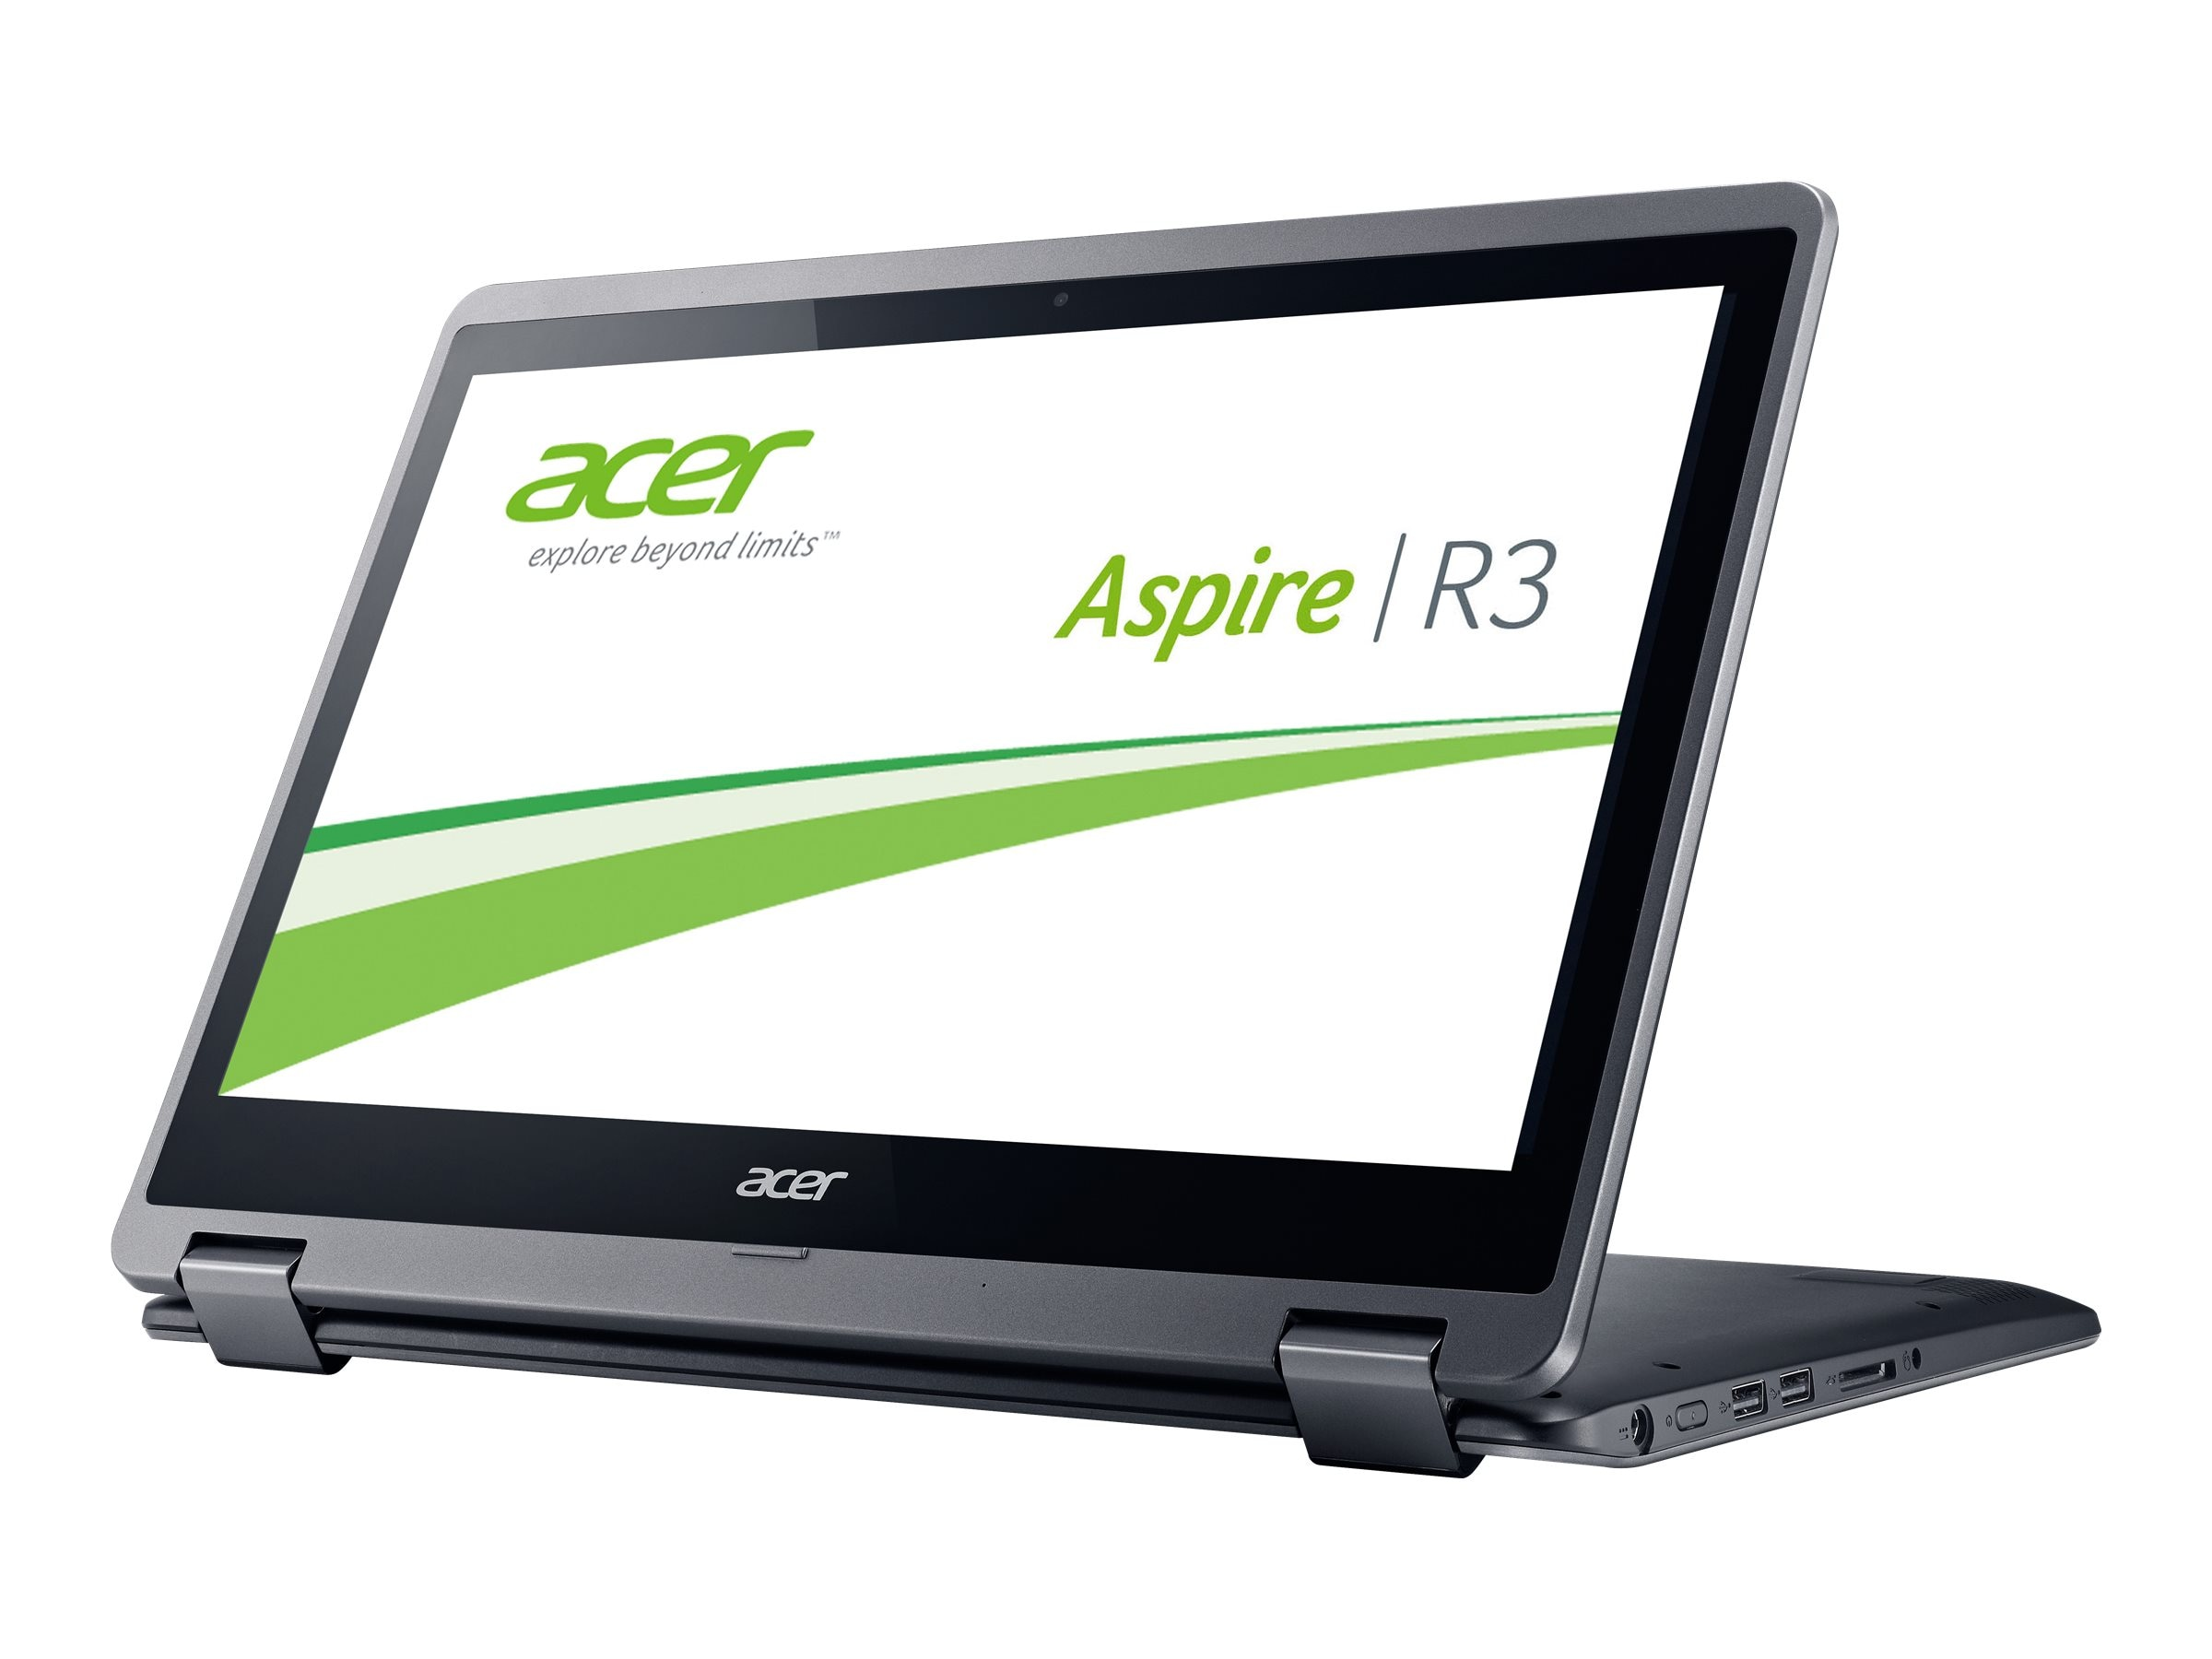 Acer Aspire R3-471T-56BQ Core i5-5200U 2.2GHz 4GB 500GB bgn GNIC WC 4C 14 HD MT W8.1-64, NX.MP4AA.012